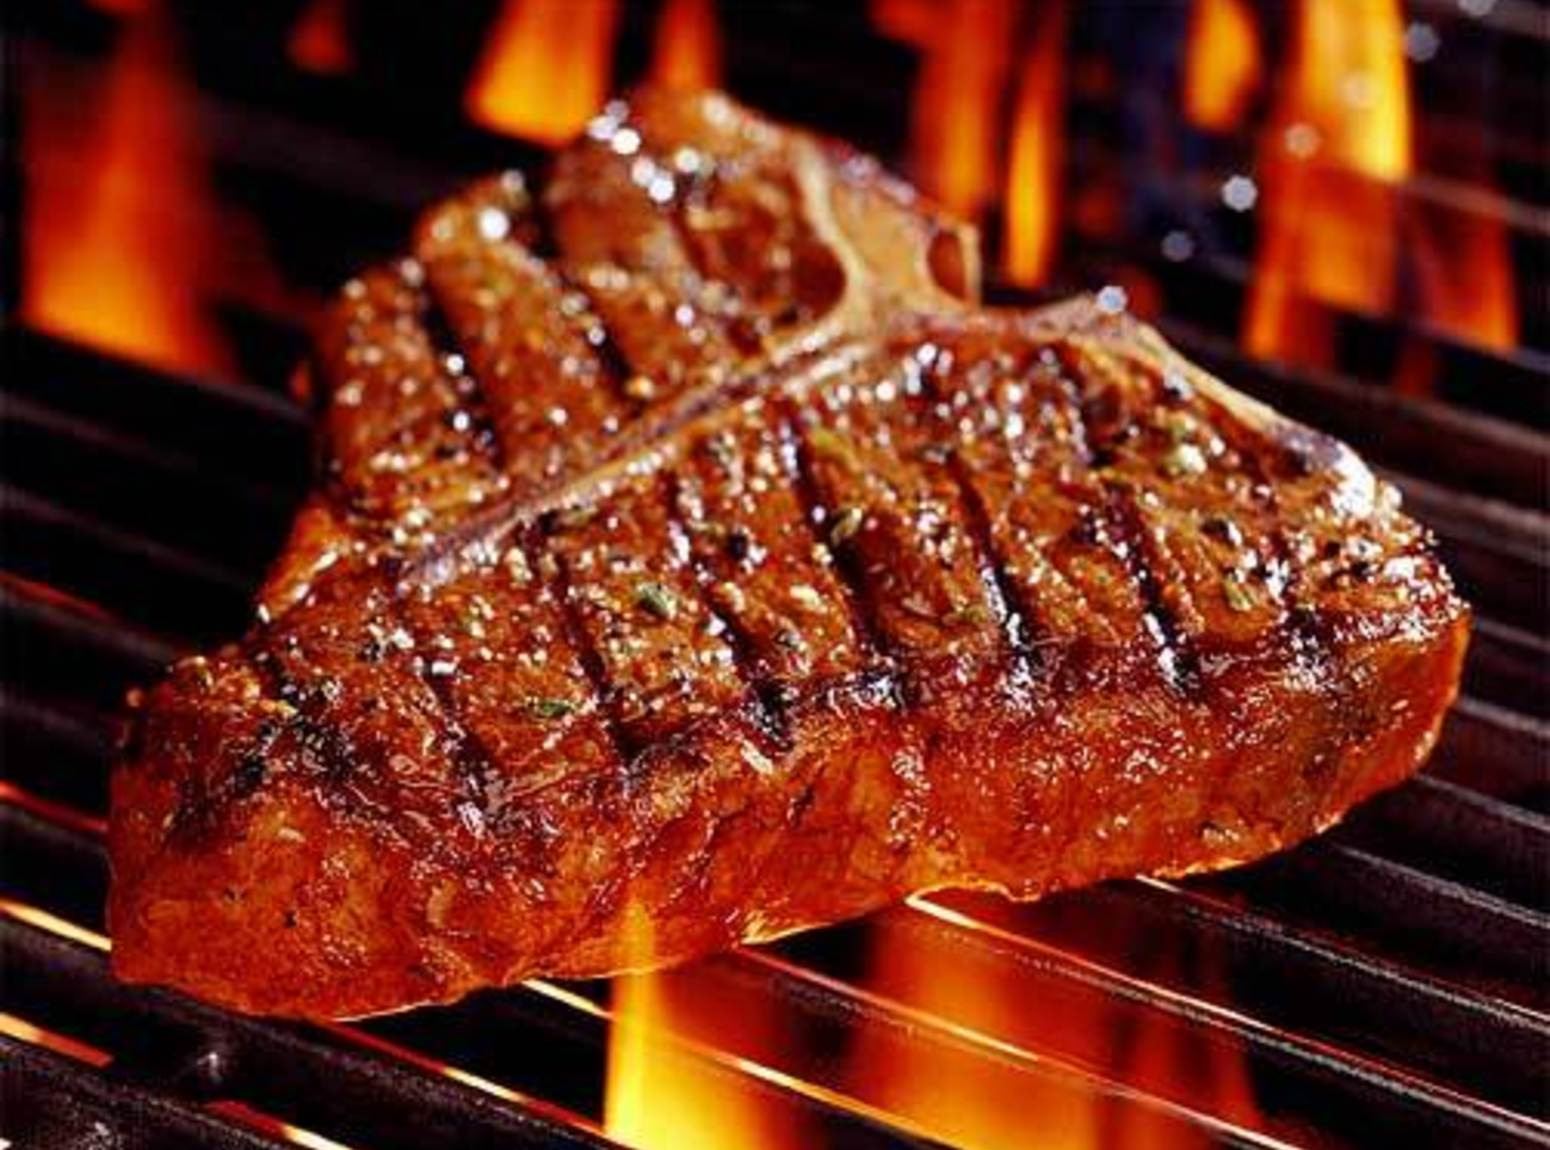 flame-kissed t-bone steak on an open grill